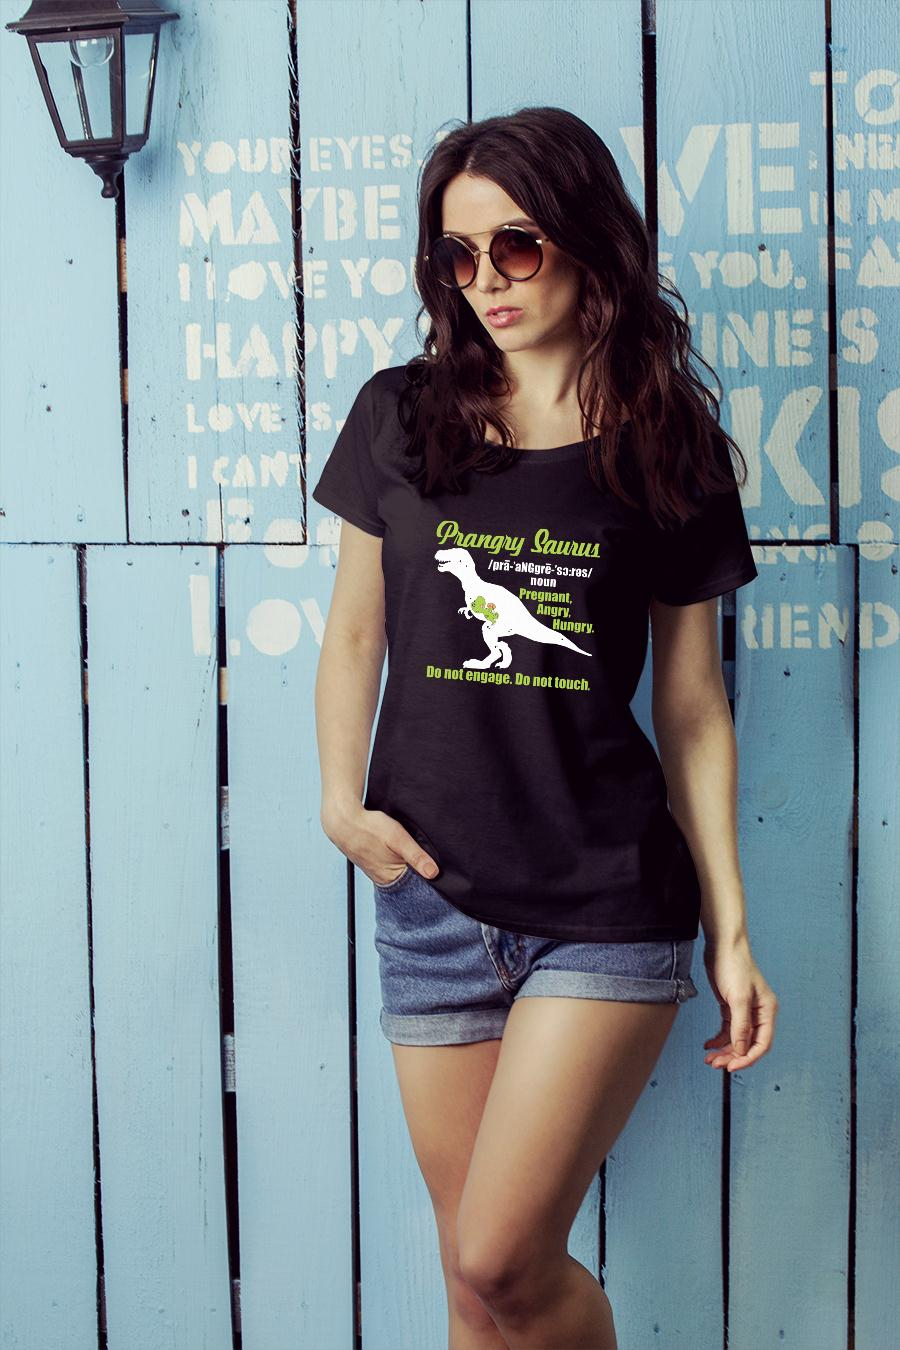 Prangry Saurus Do Not Touch shirt ladies tee official